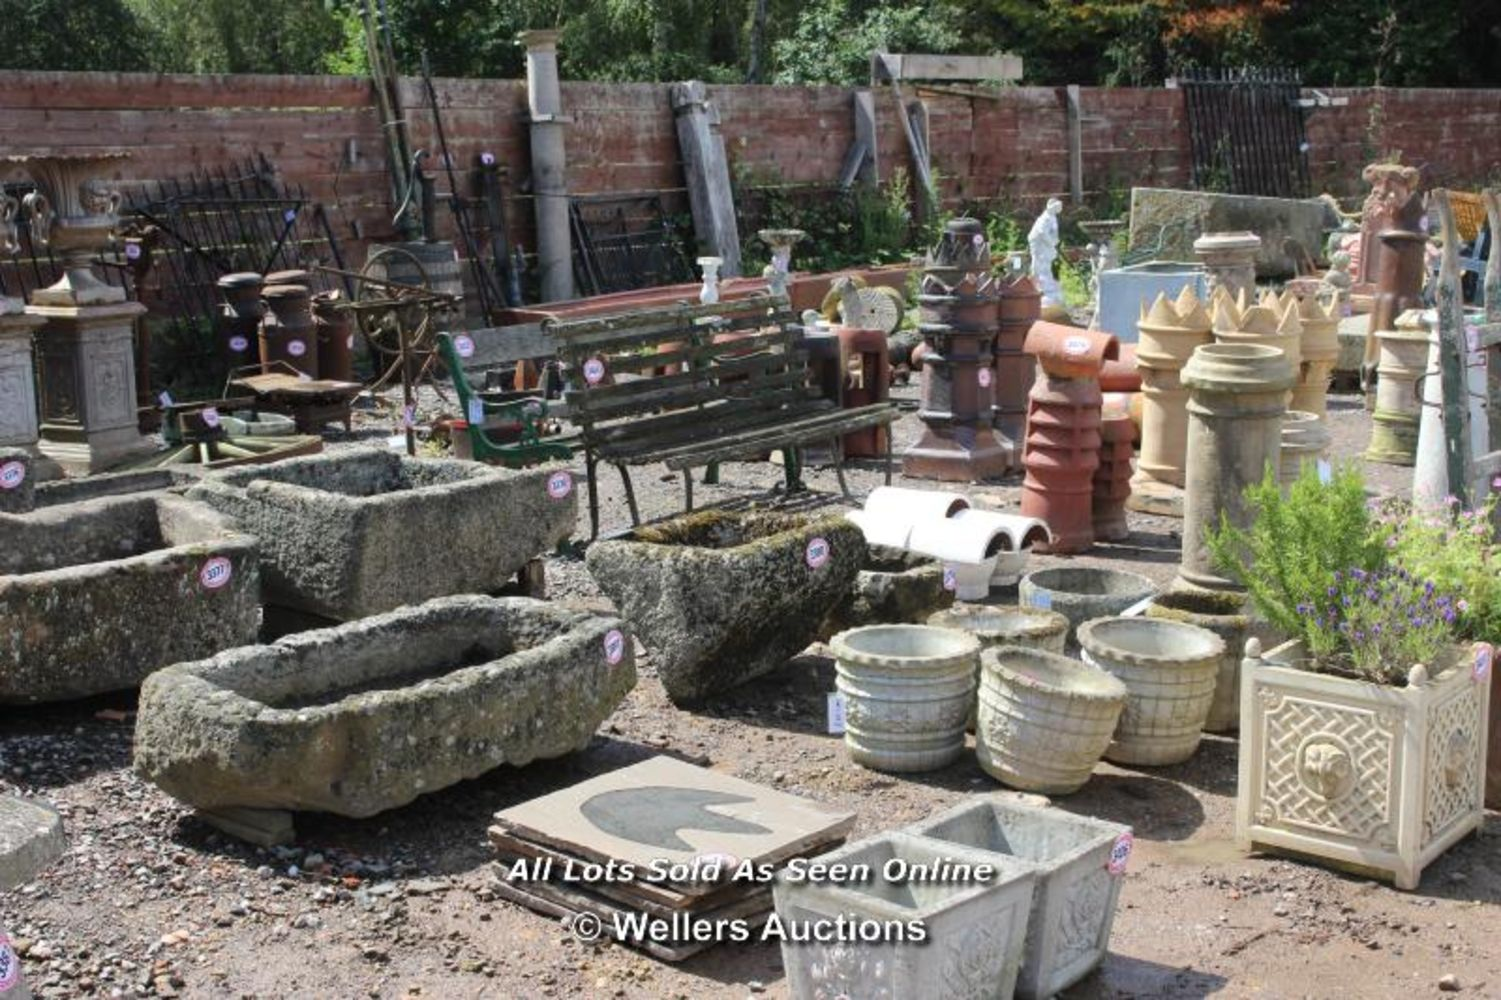 Unreserved clearance auction on behalf of Authentic Reclamation Ltd of architectural antiques, garden features, materials and repro